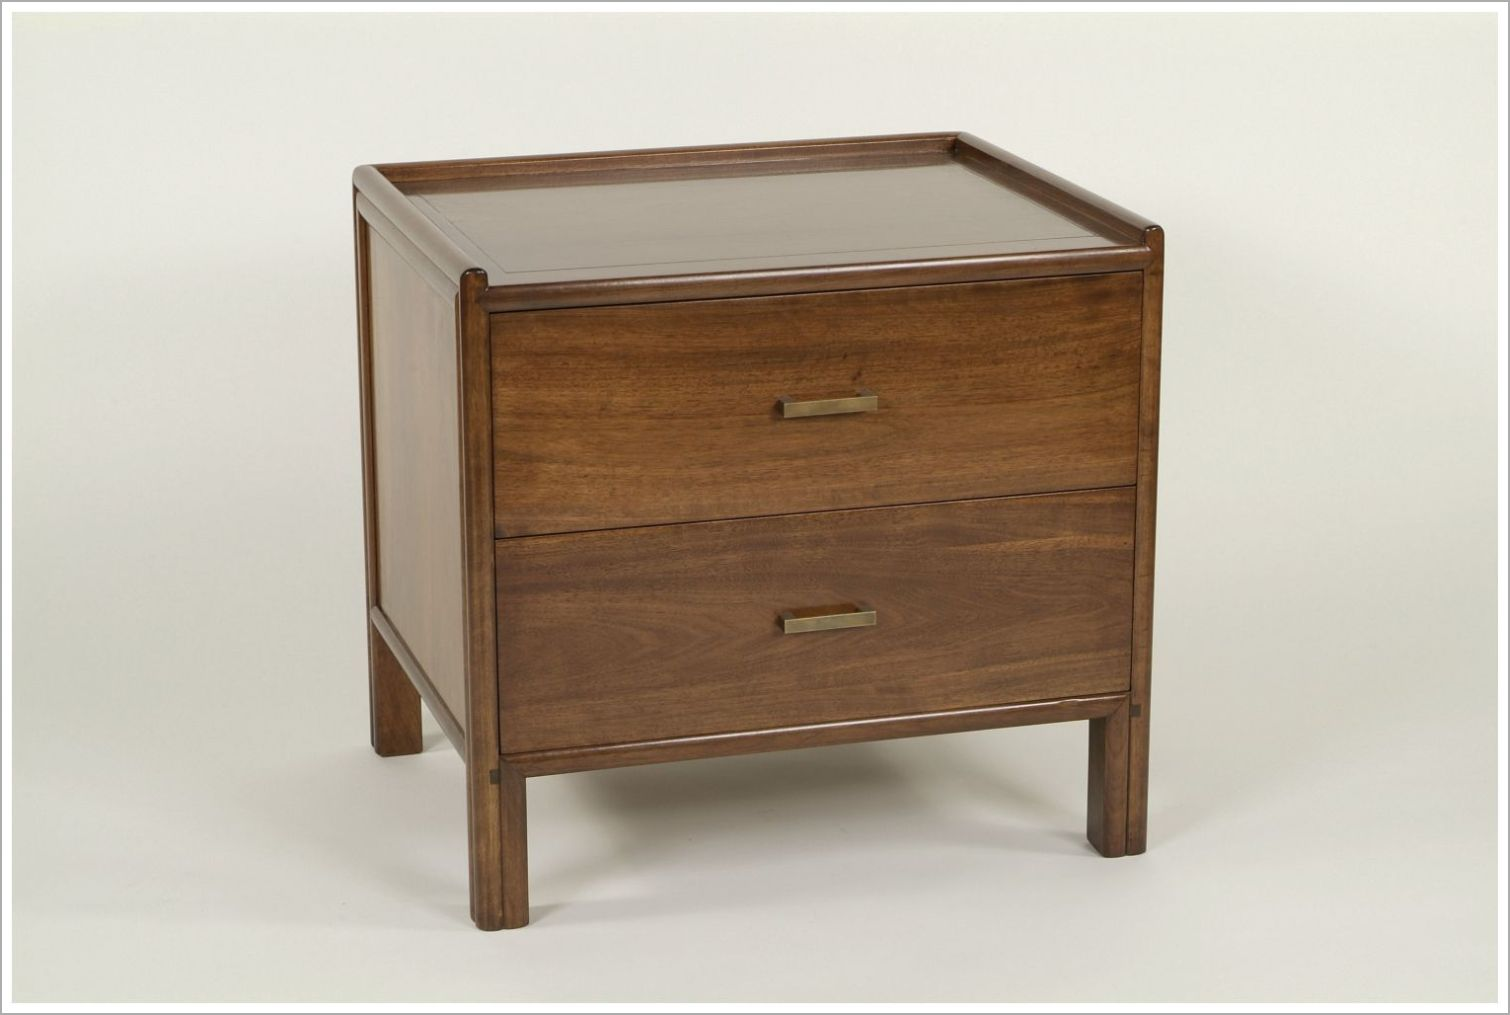 Custom Solid Wood Hotel Nightstand with Bronze Hardware